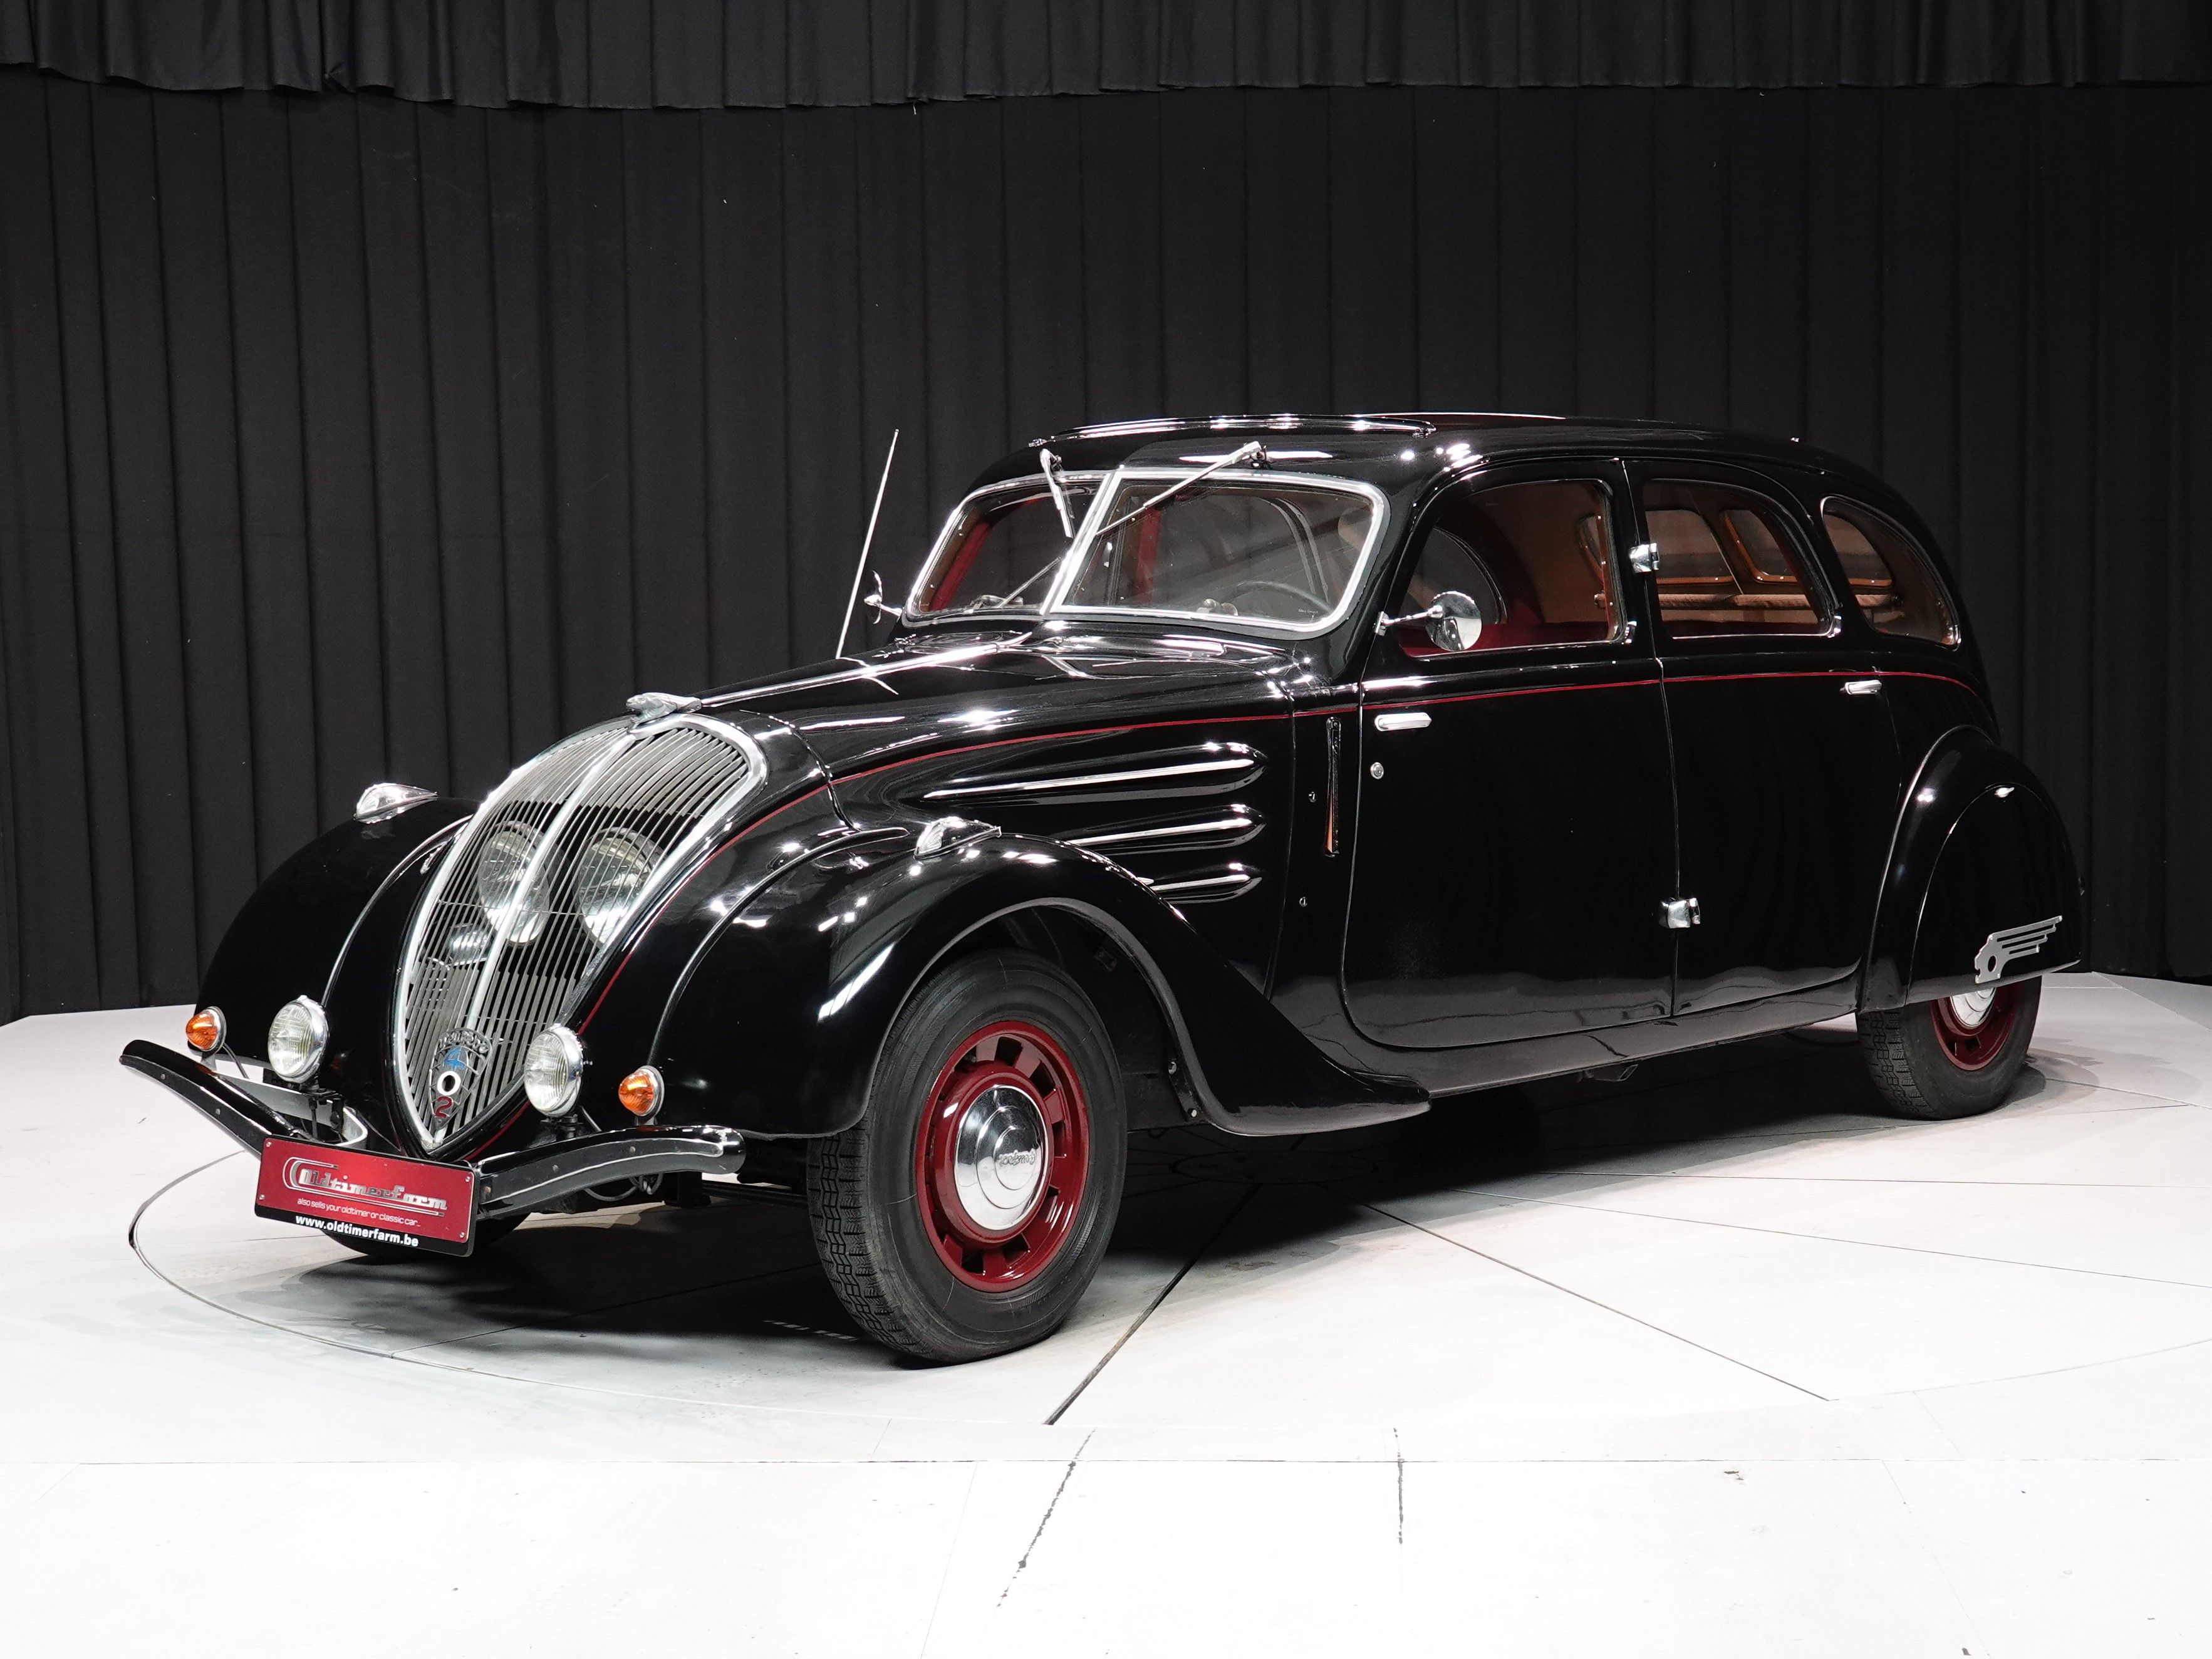 Peugeot 402 B '38 in 2020 Peugeot, Cars for sale